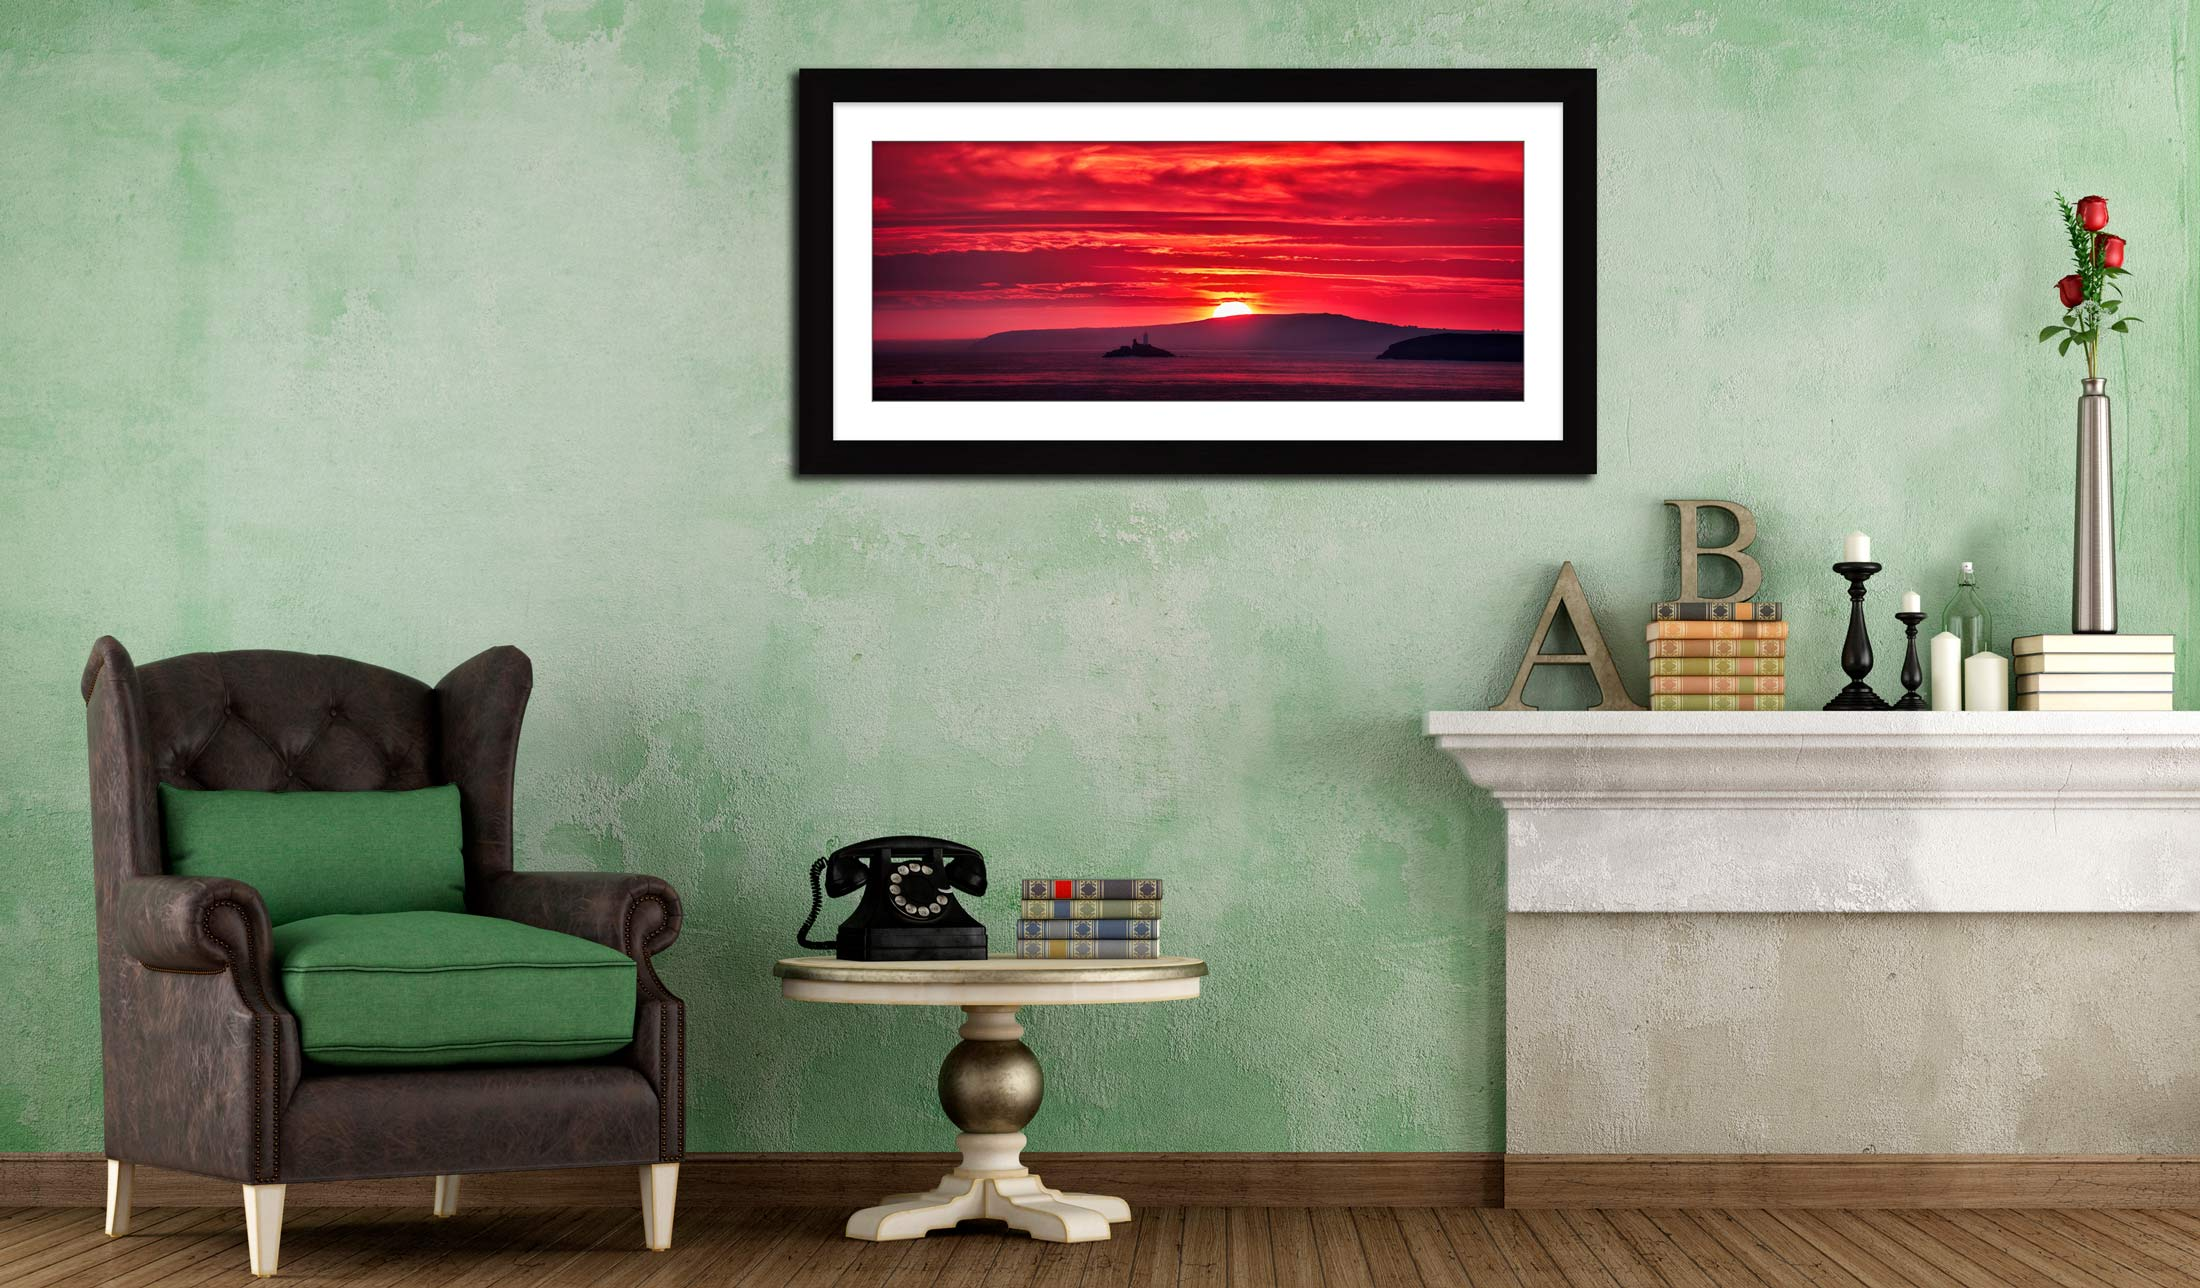 Red Sky in the Morning - Framed Print with Mount on Wall